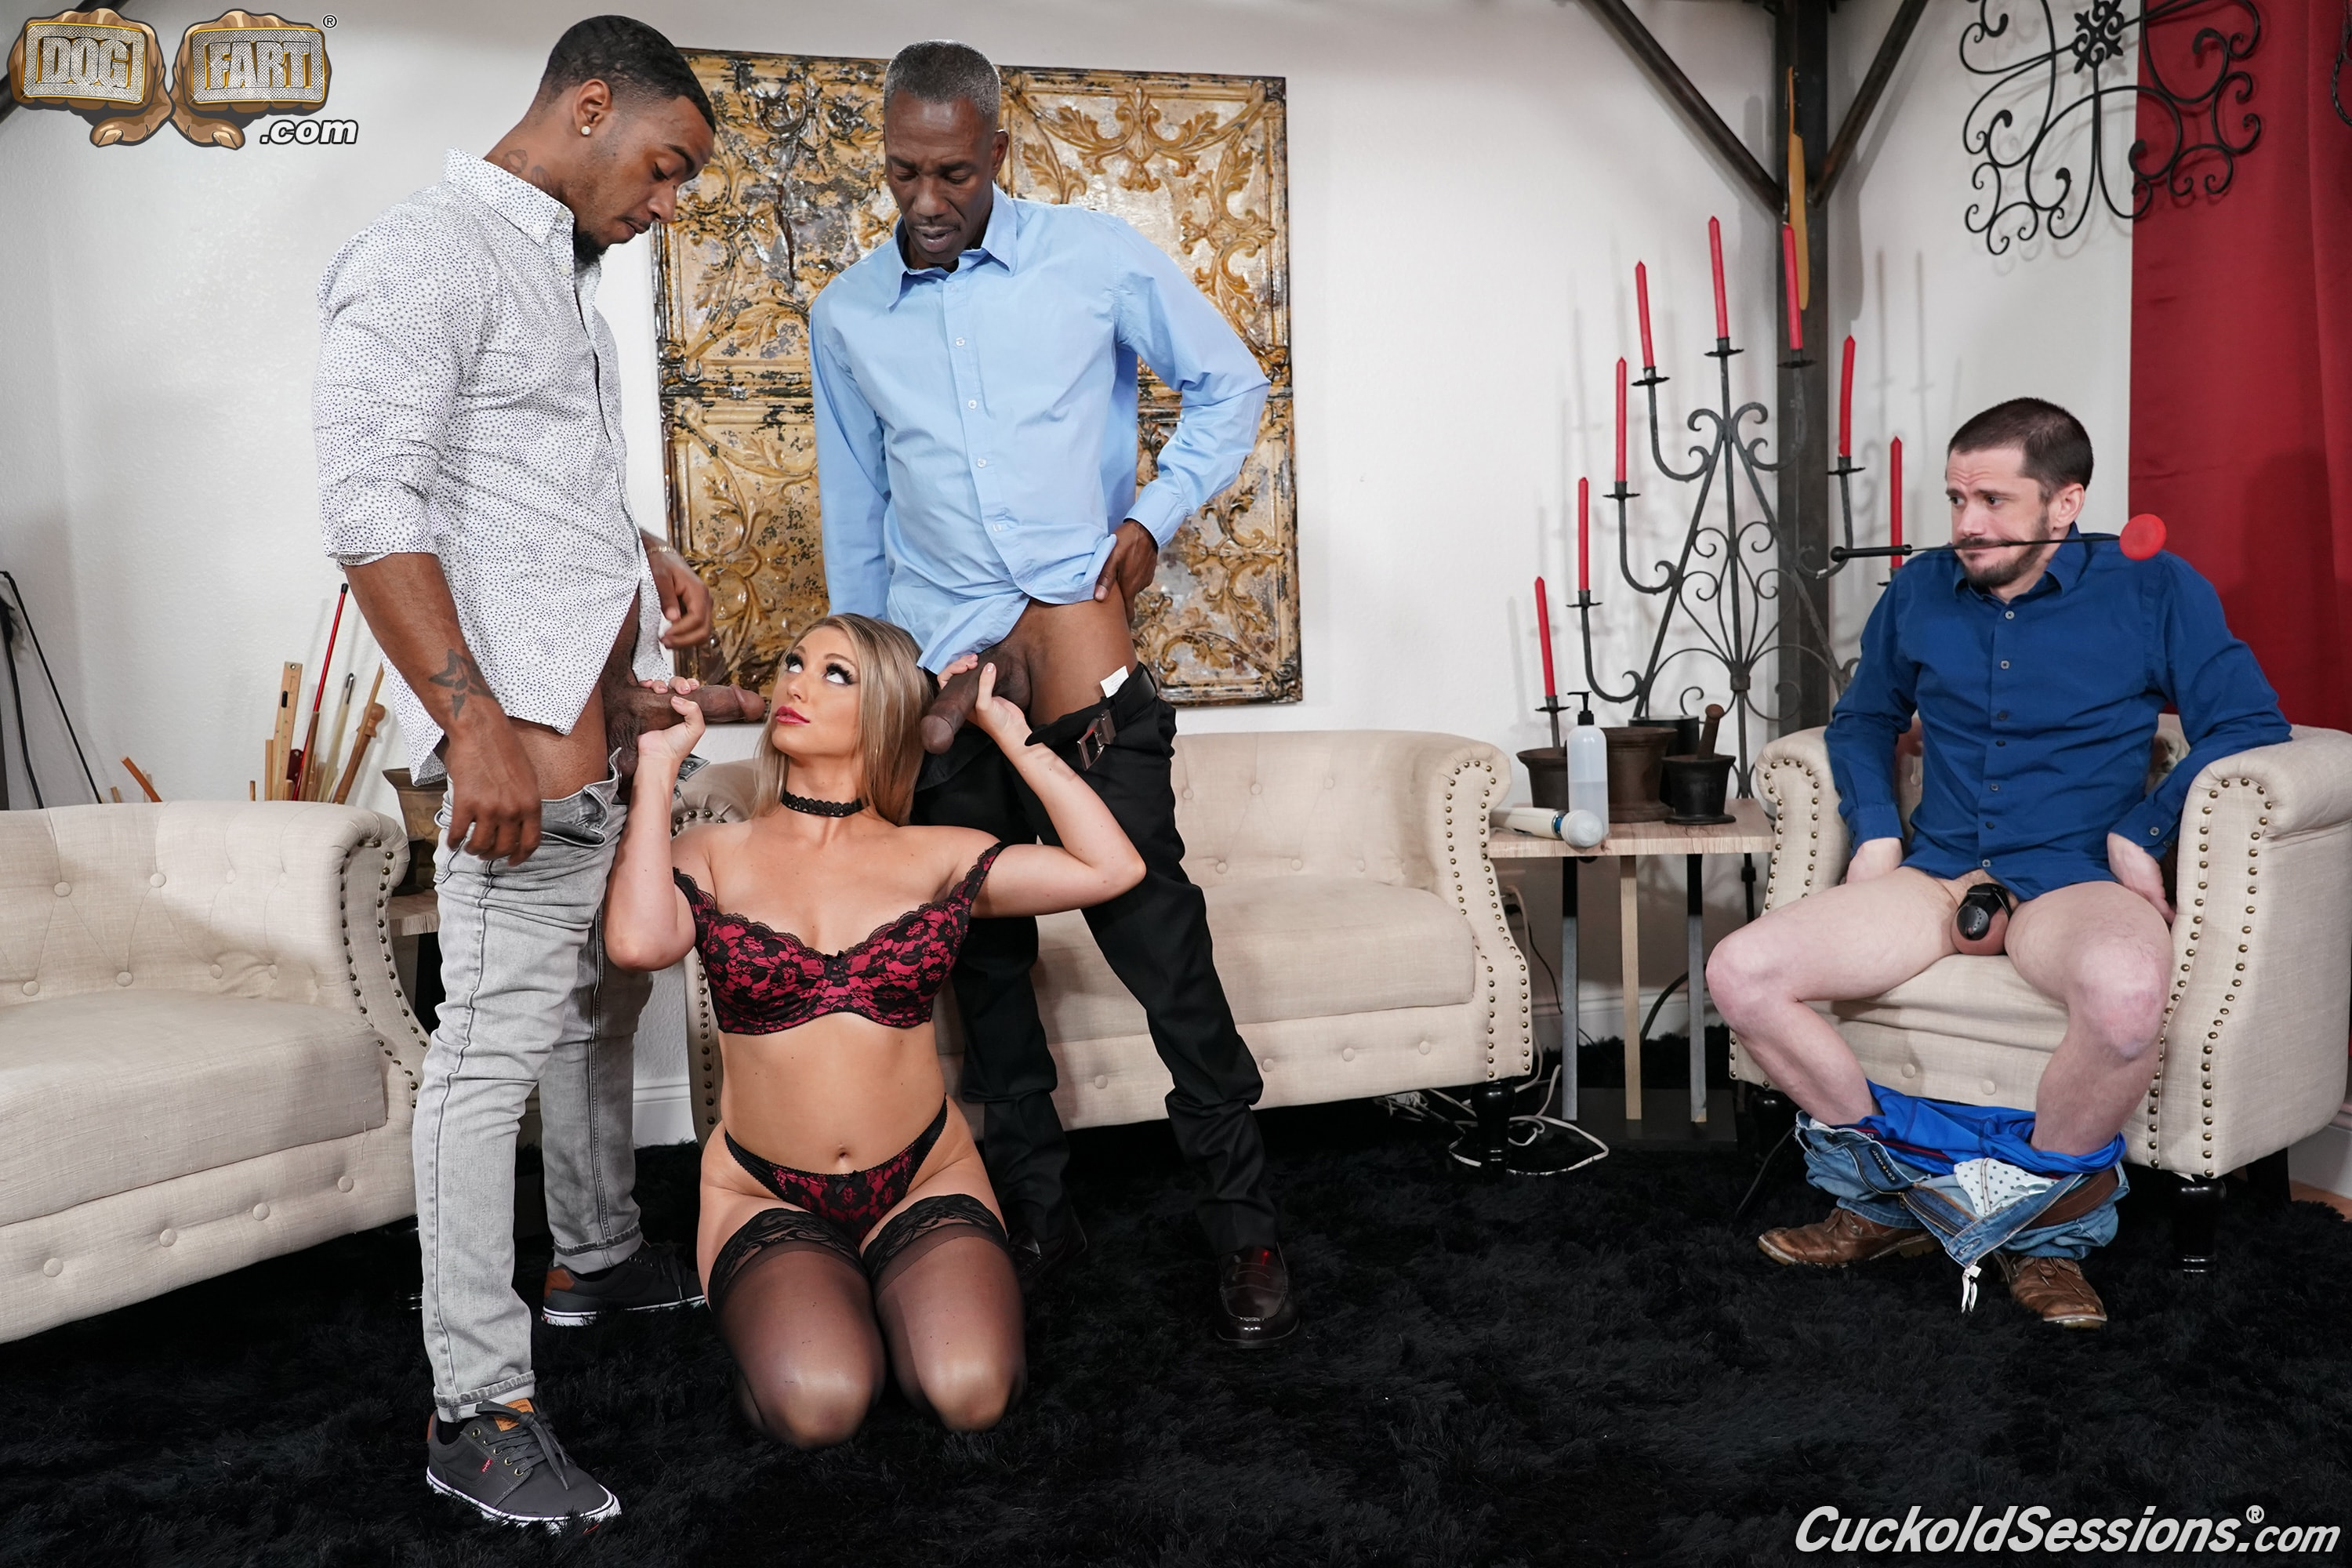 Dogfart '- Cuckold Sessions - Scene 2' starring Kayley Gunner (Photo 13)